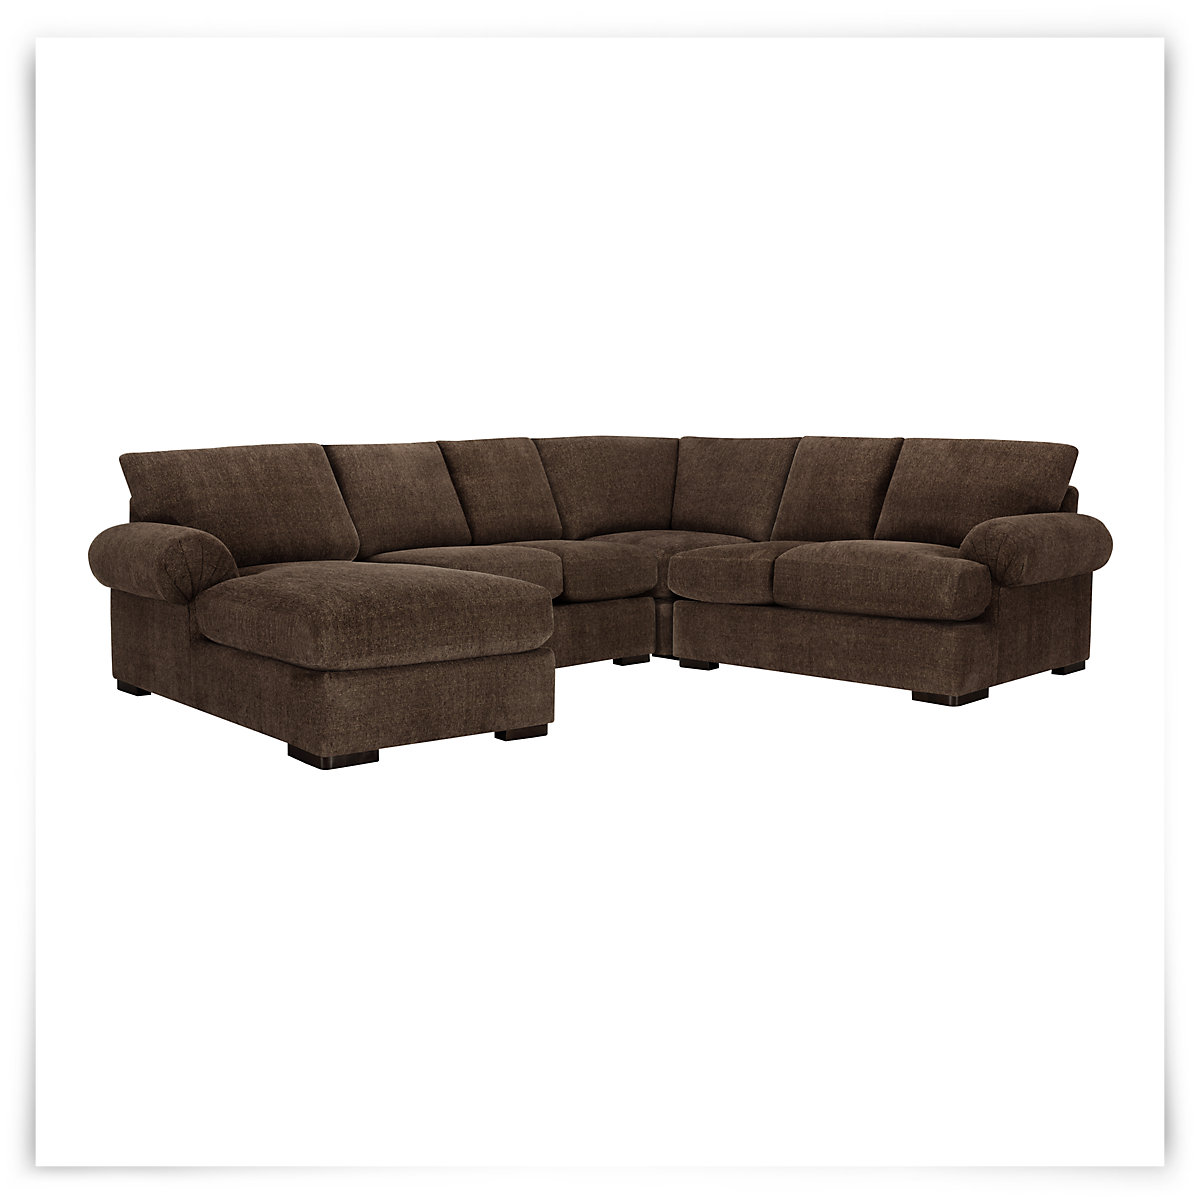 City furniture belair dk brown microfiber medium left for Brown microfiber sectional with chaise